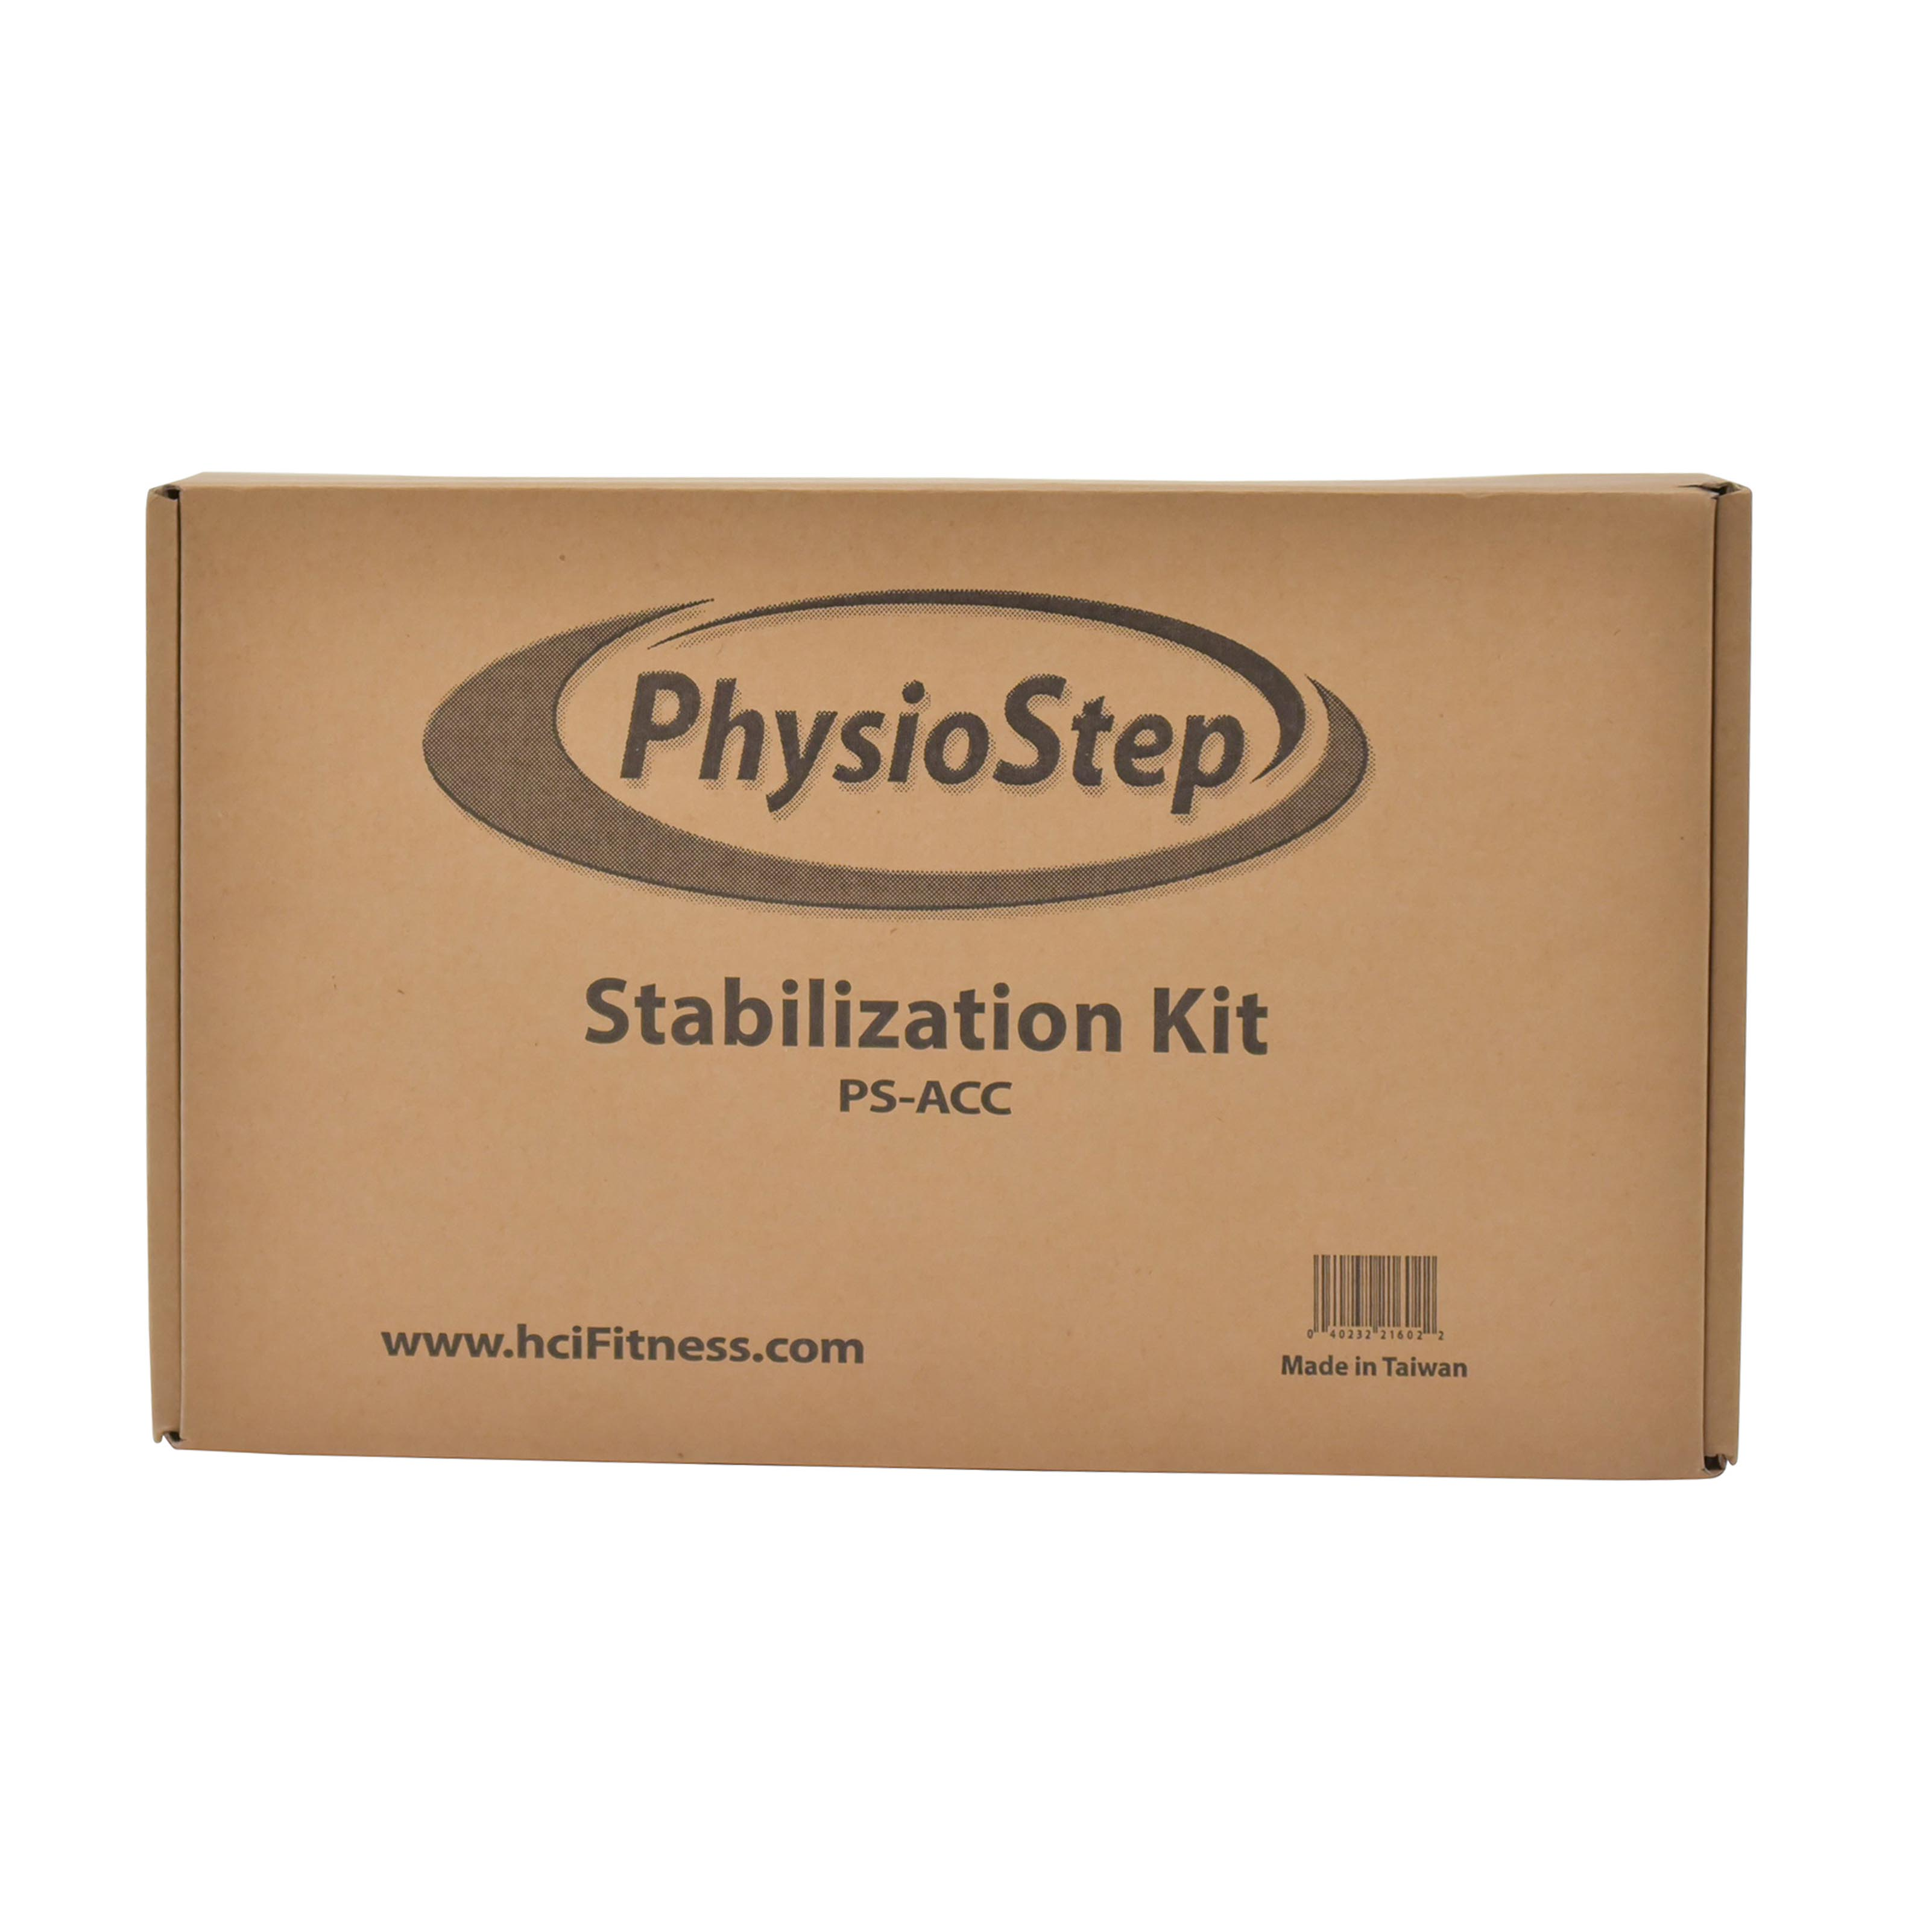 PhysioStep Stabilization Kit bi-lateral leg stabilizers, hand grips, and retractable seat belt